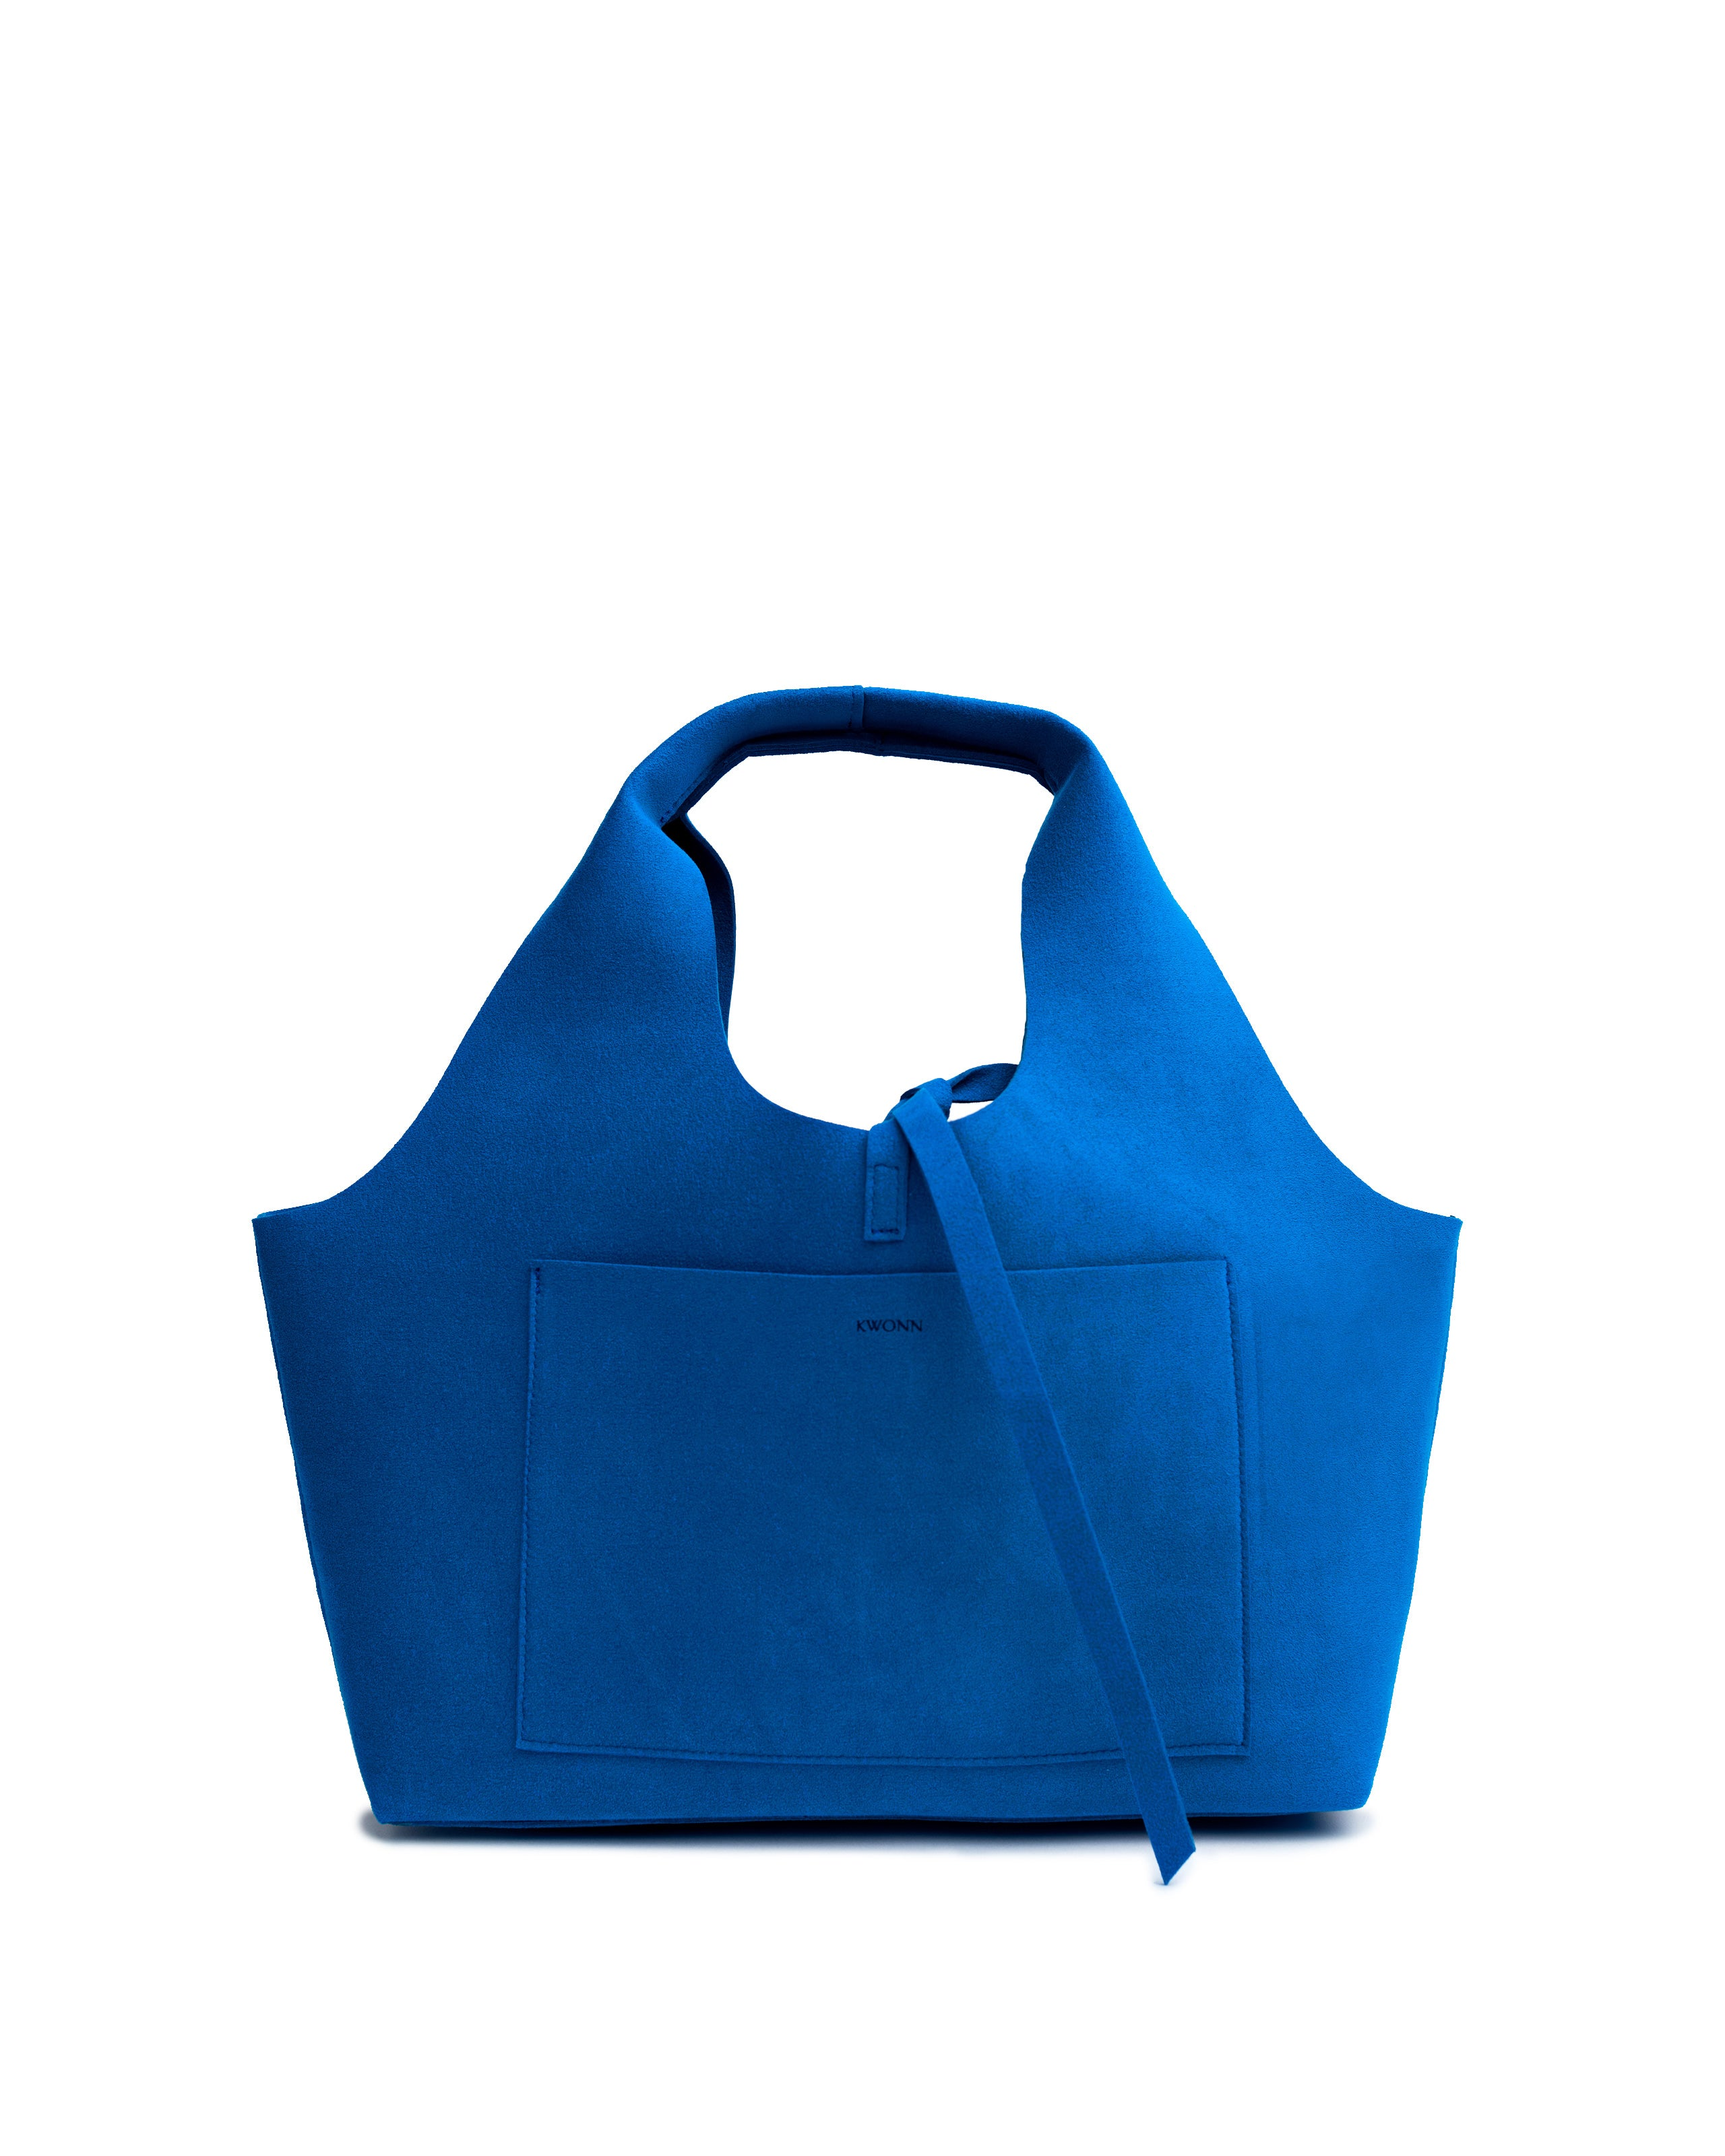 blue-tote-bag